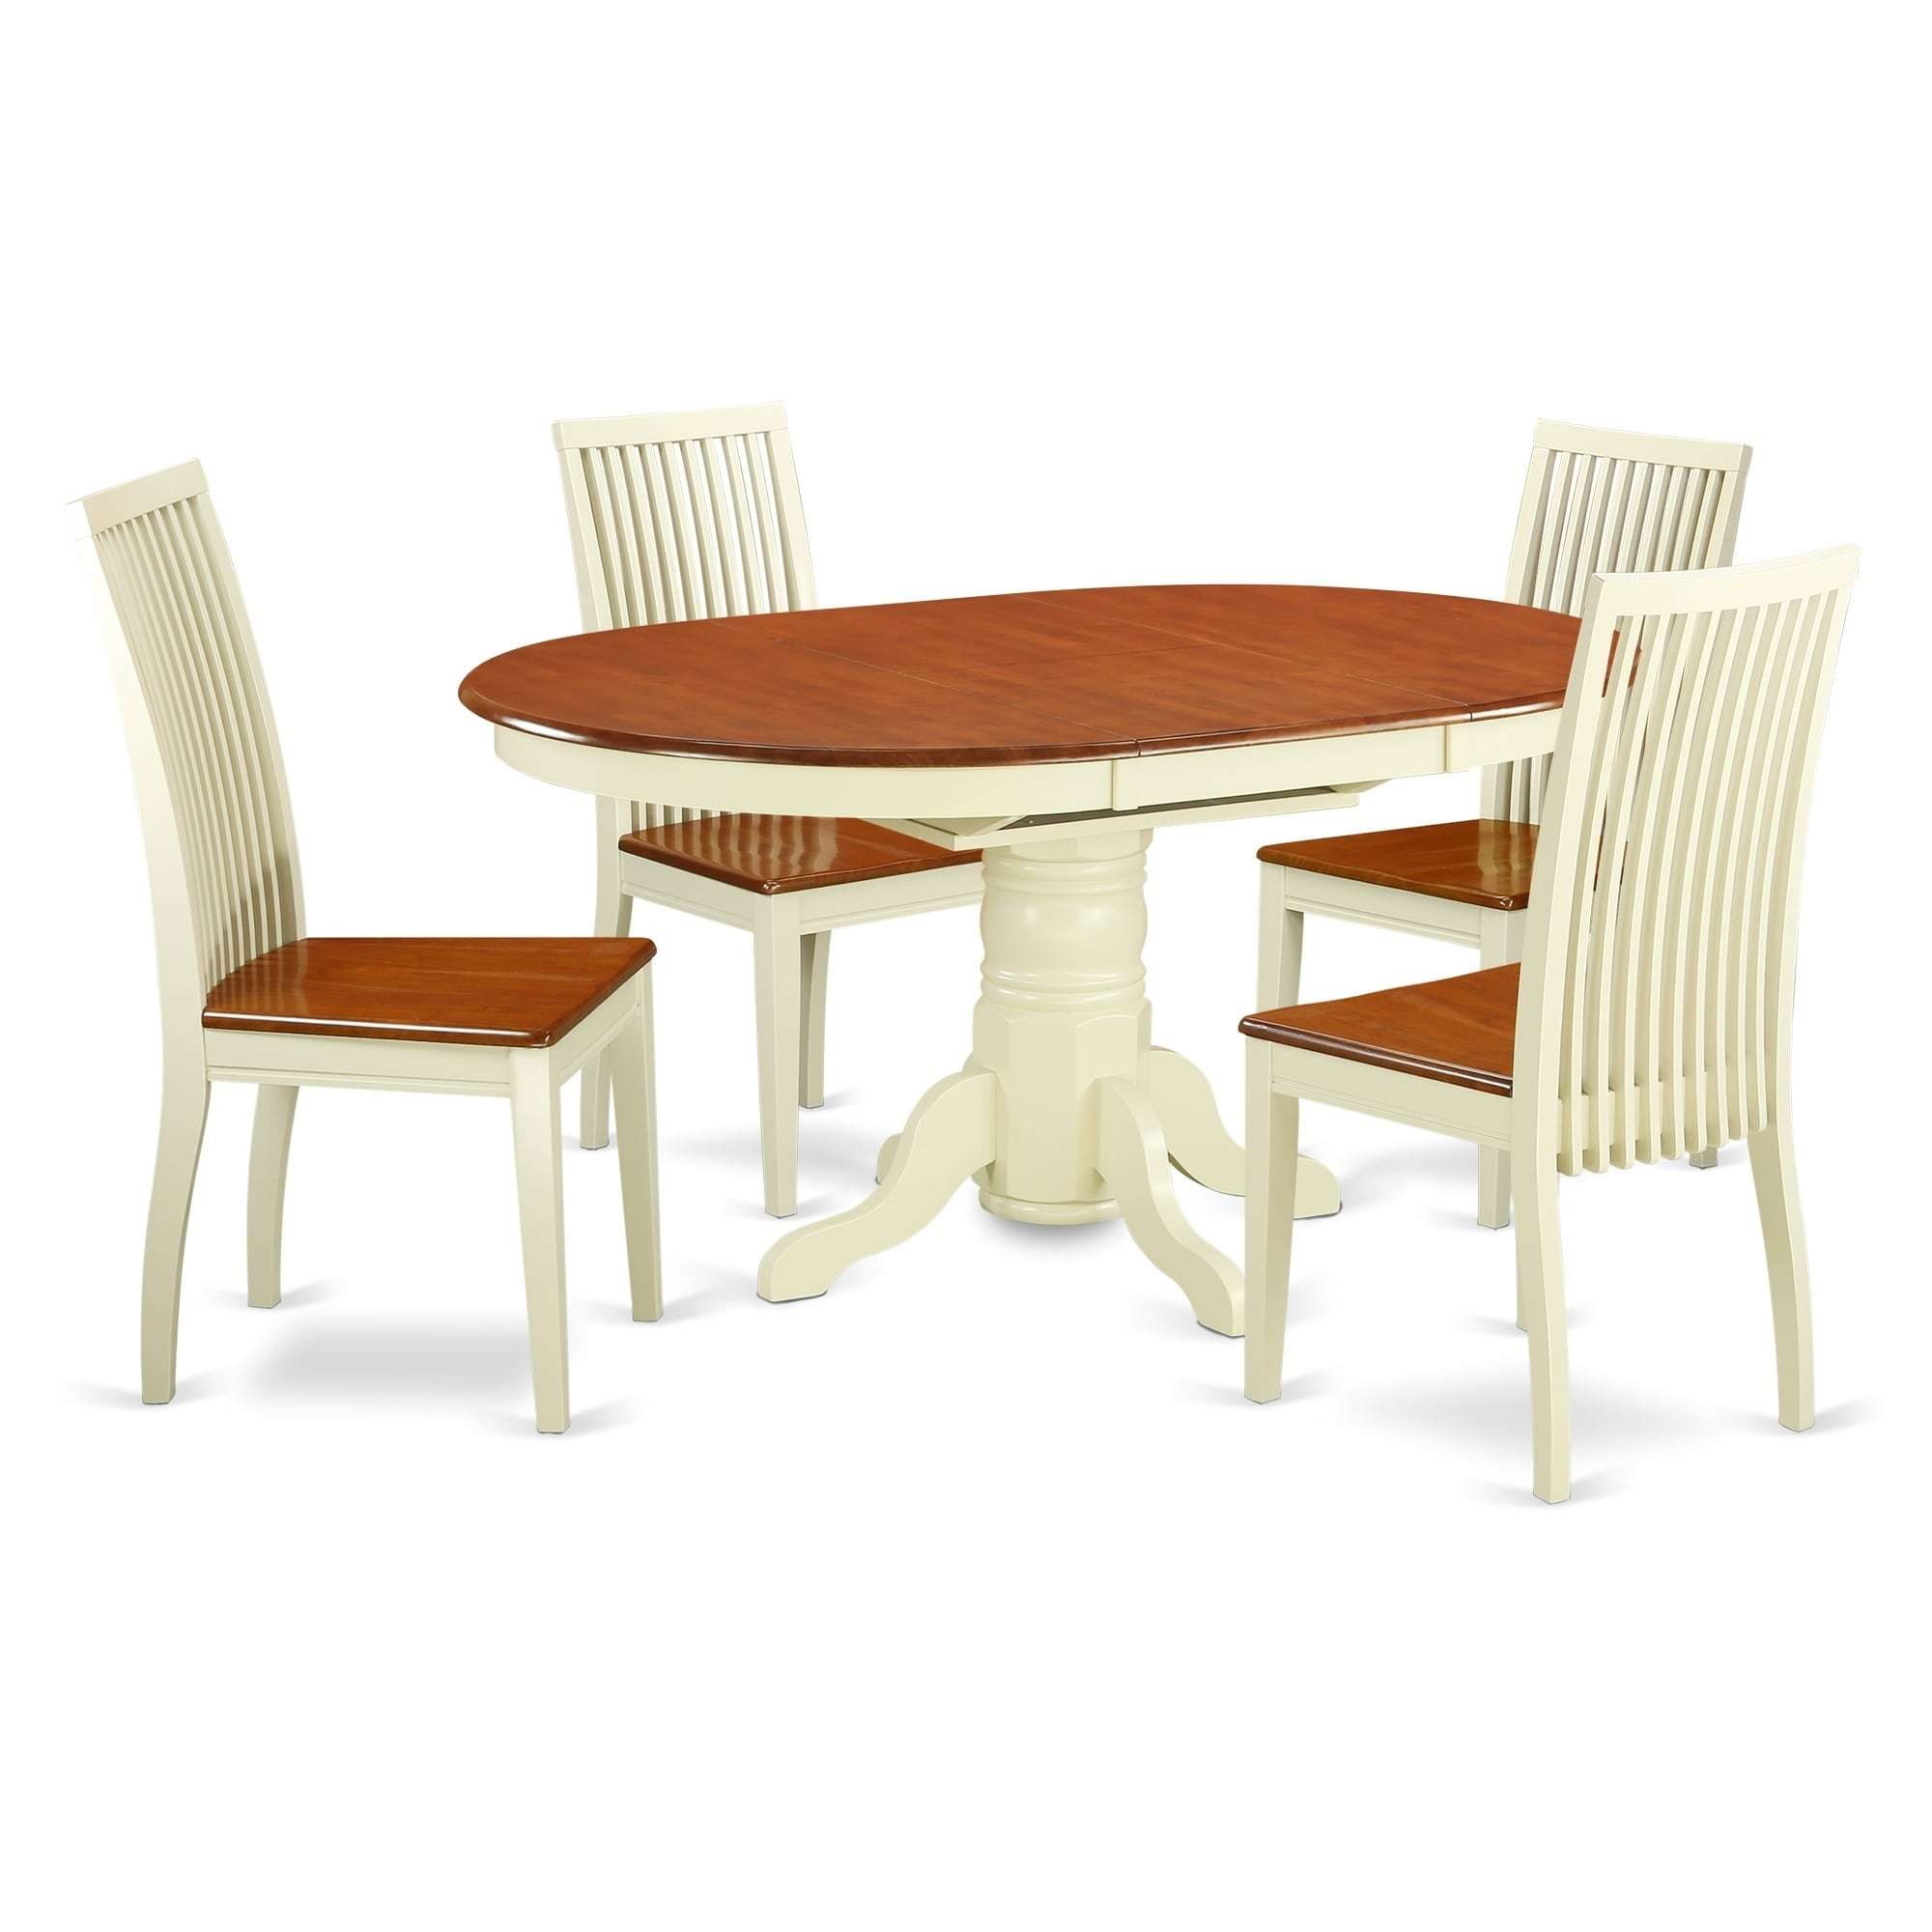 East West Furniture AVIP7-WHI-W 7 Pc Dining set with a Kitchen Table and 6 Wood Seat Kitchen Chairs in Buttermilk and Cherry-Finish:Buttermilk & Cherry,Shape:Oval,Style:Wood Seat